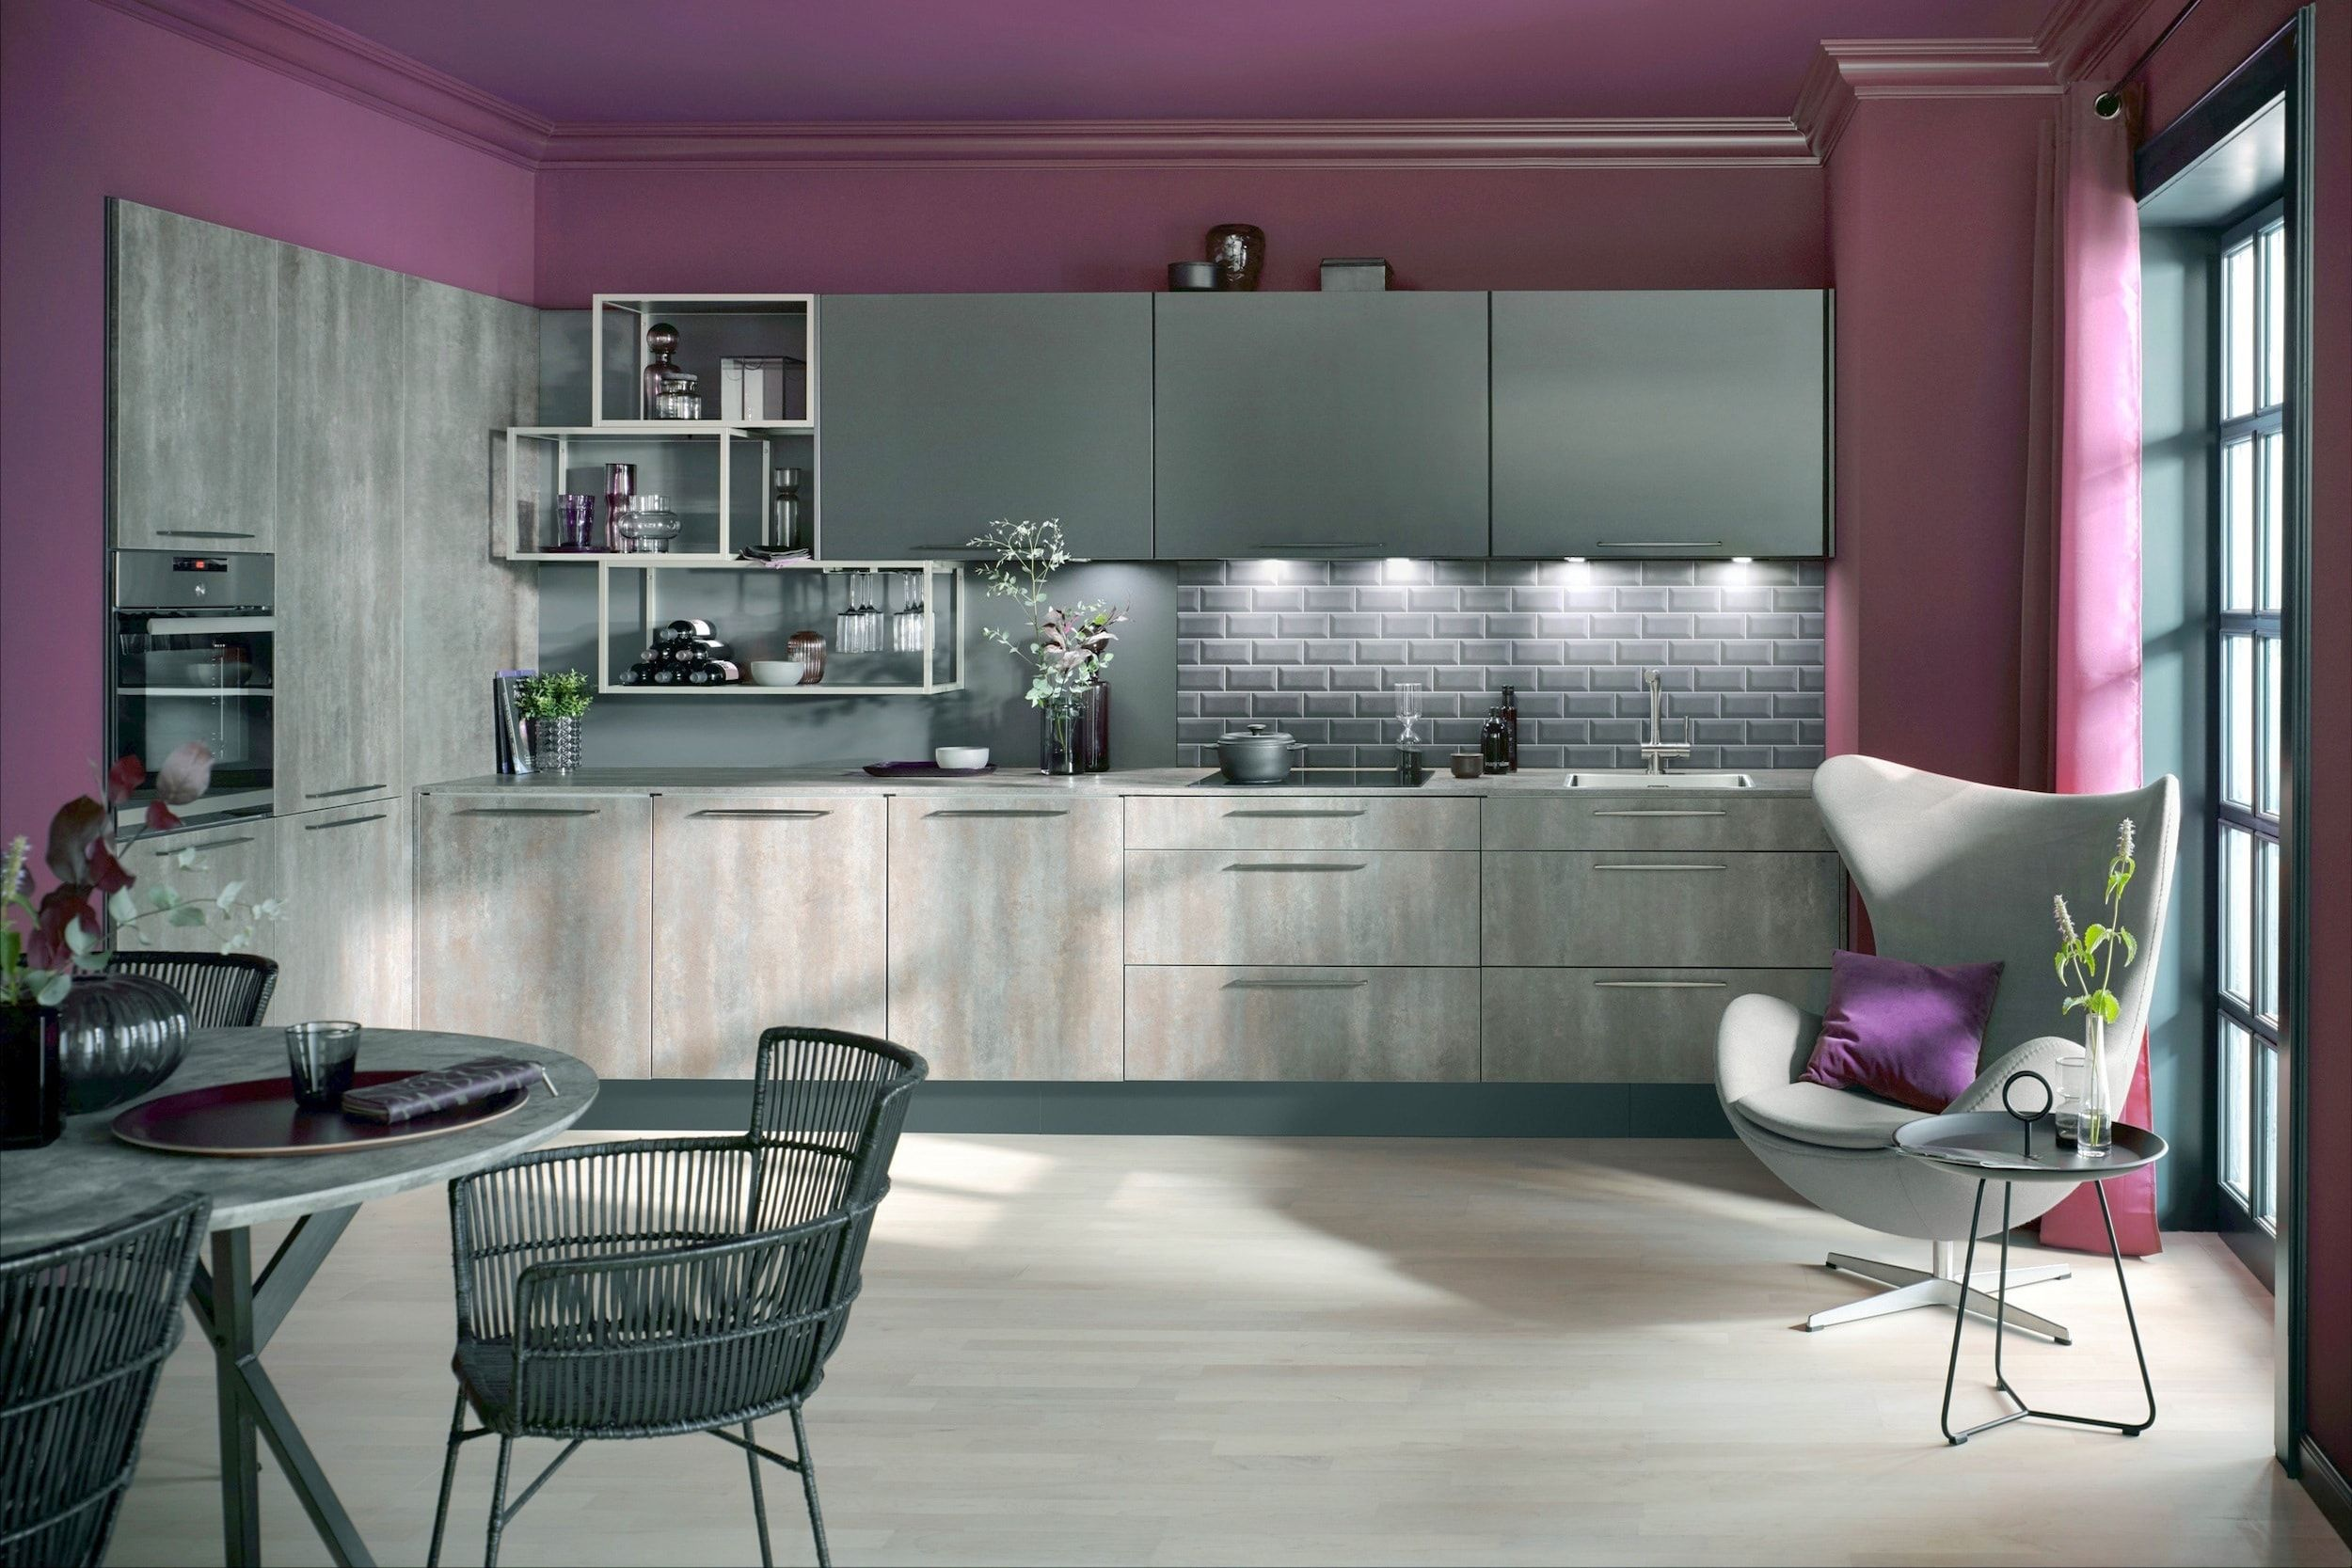 Oxide Stone Effect Kitchens Kitchen color trends